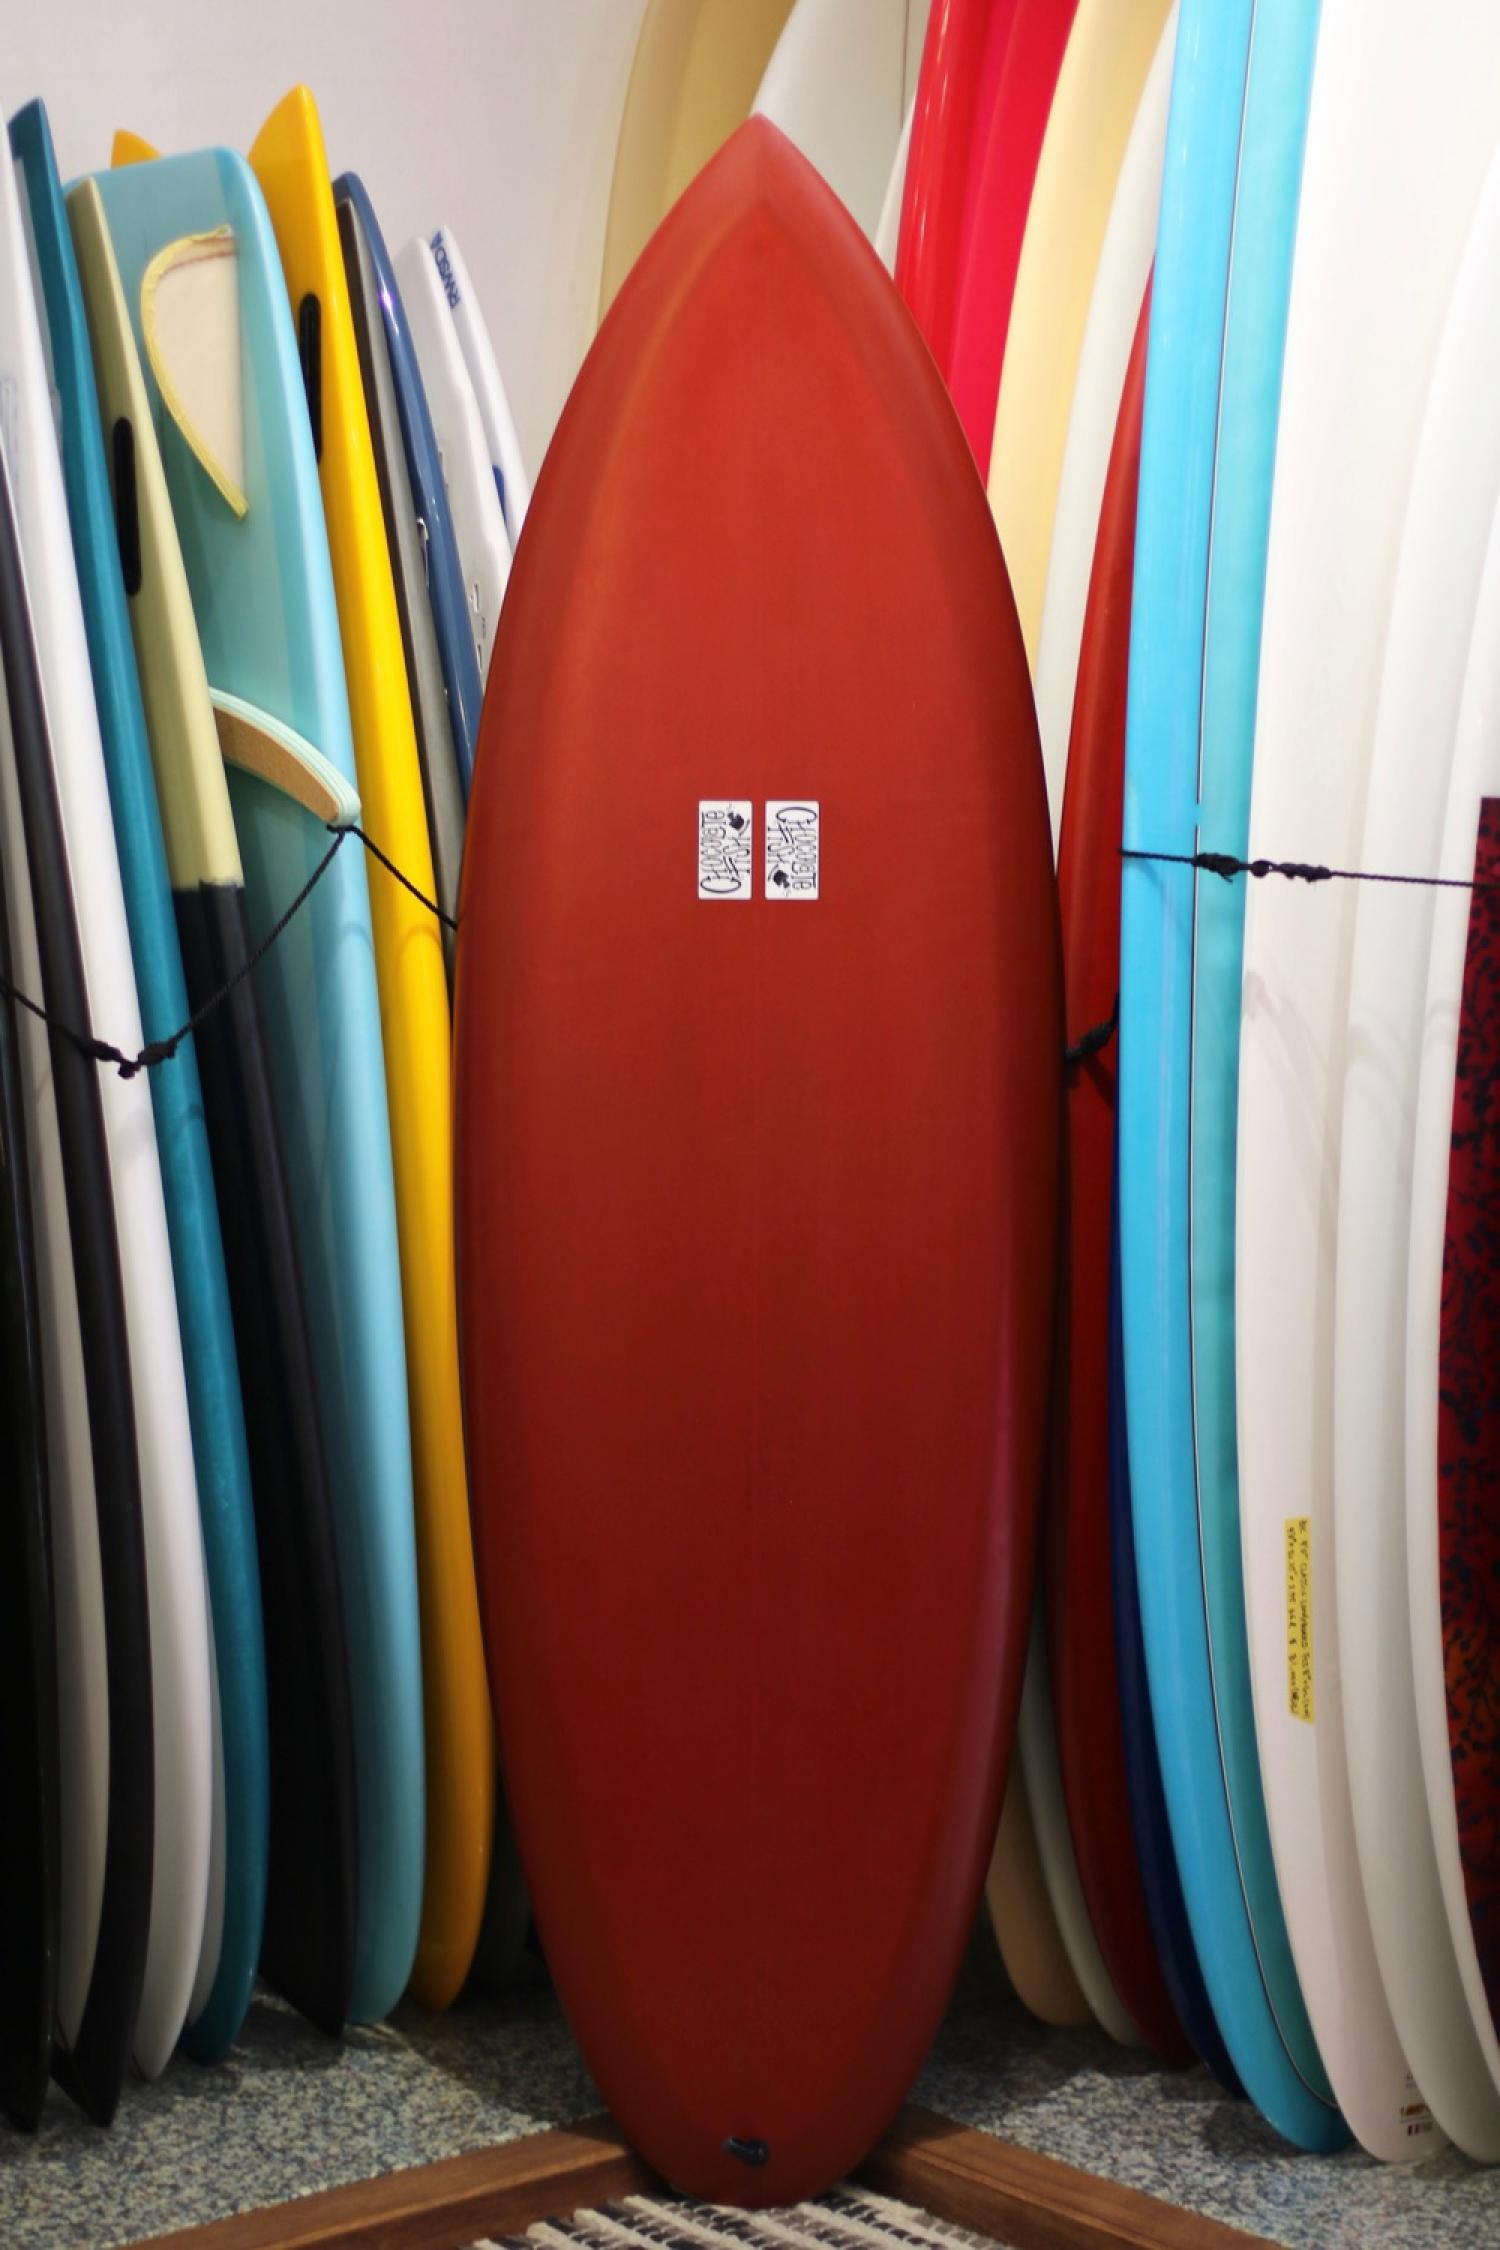 USED BOARDS (Chocolate Fish Surfboards Cosmic Fonder 5.10)